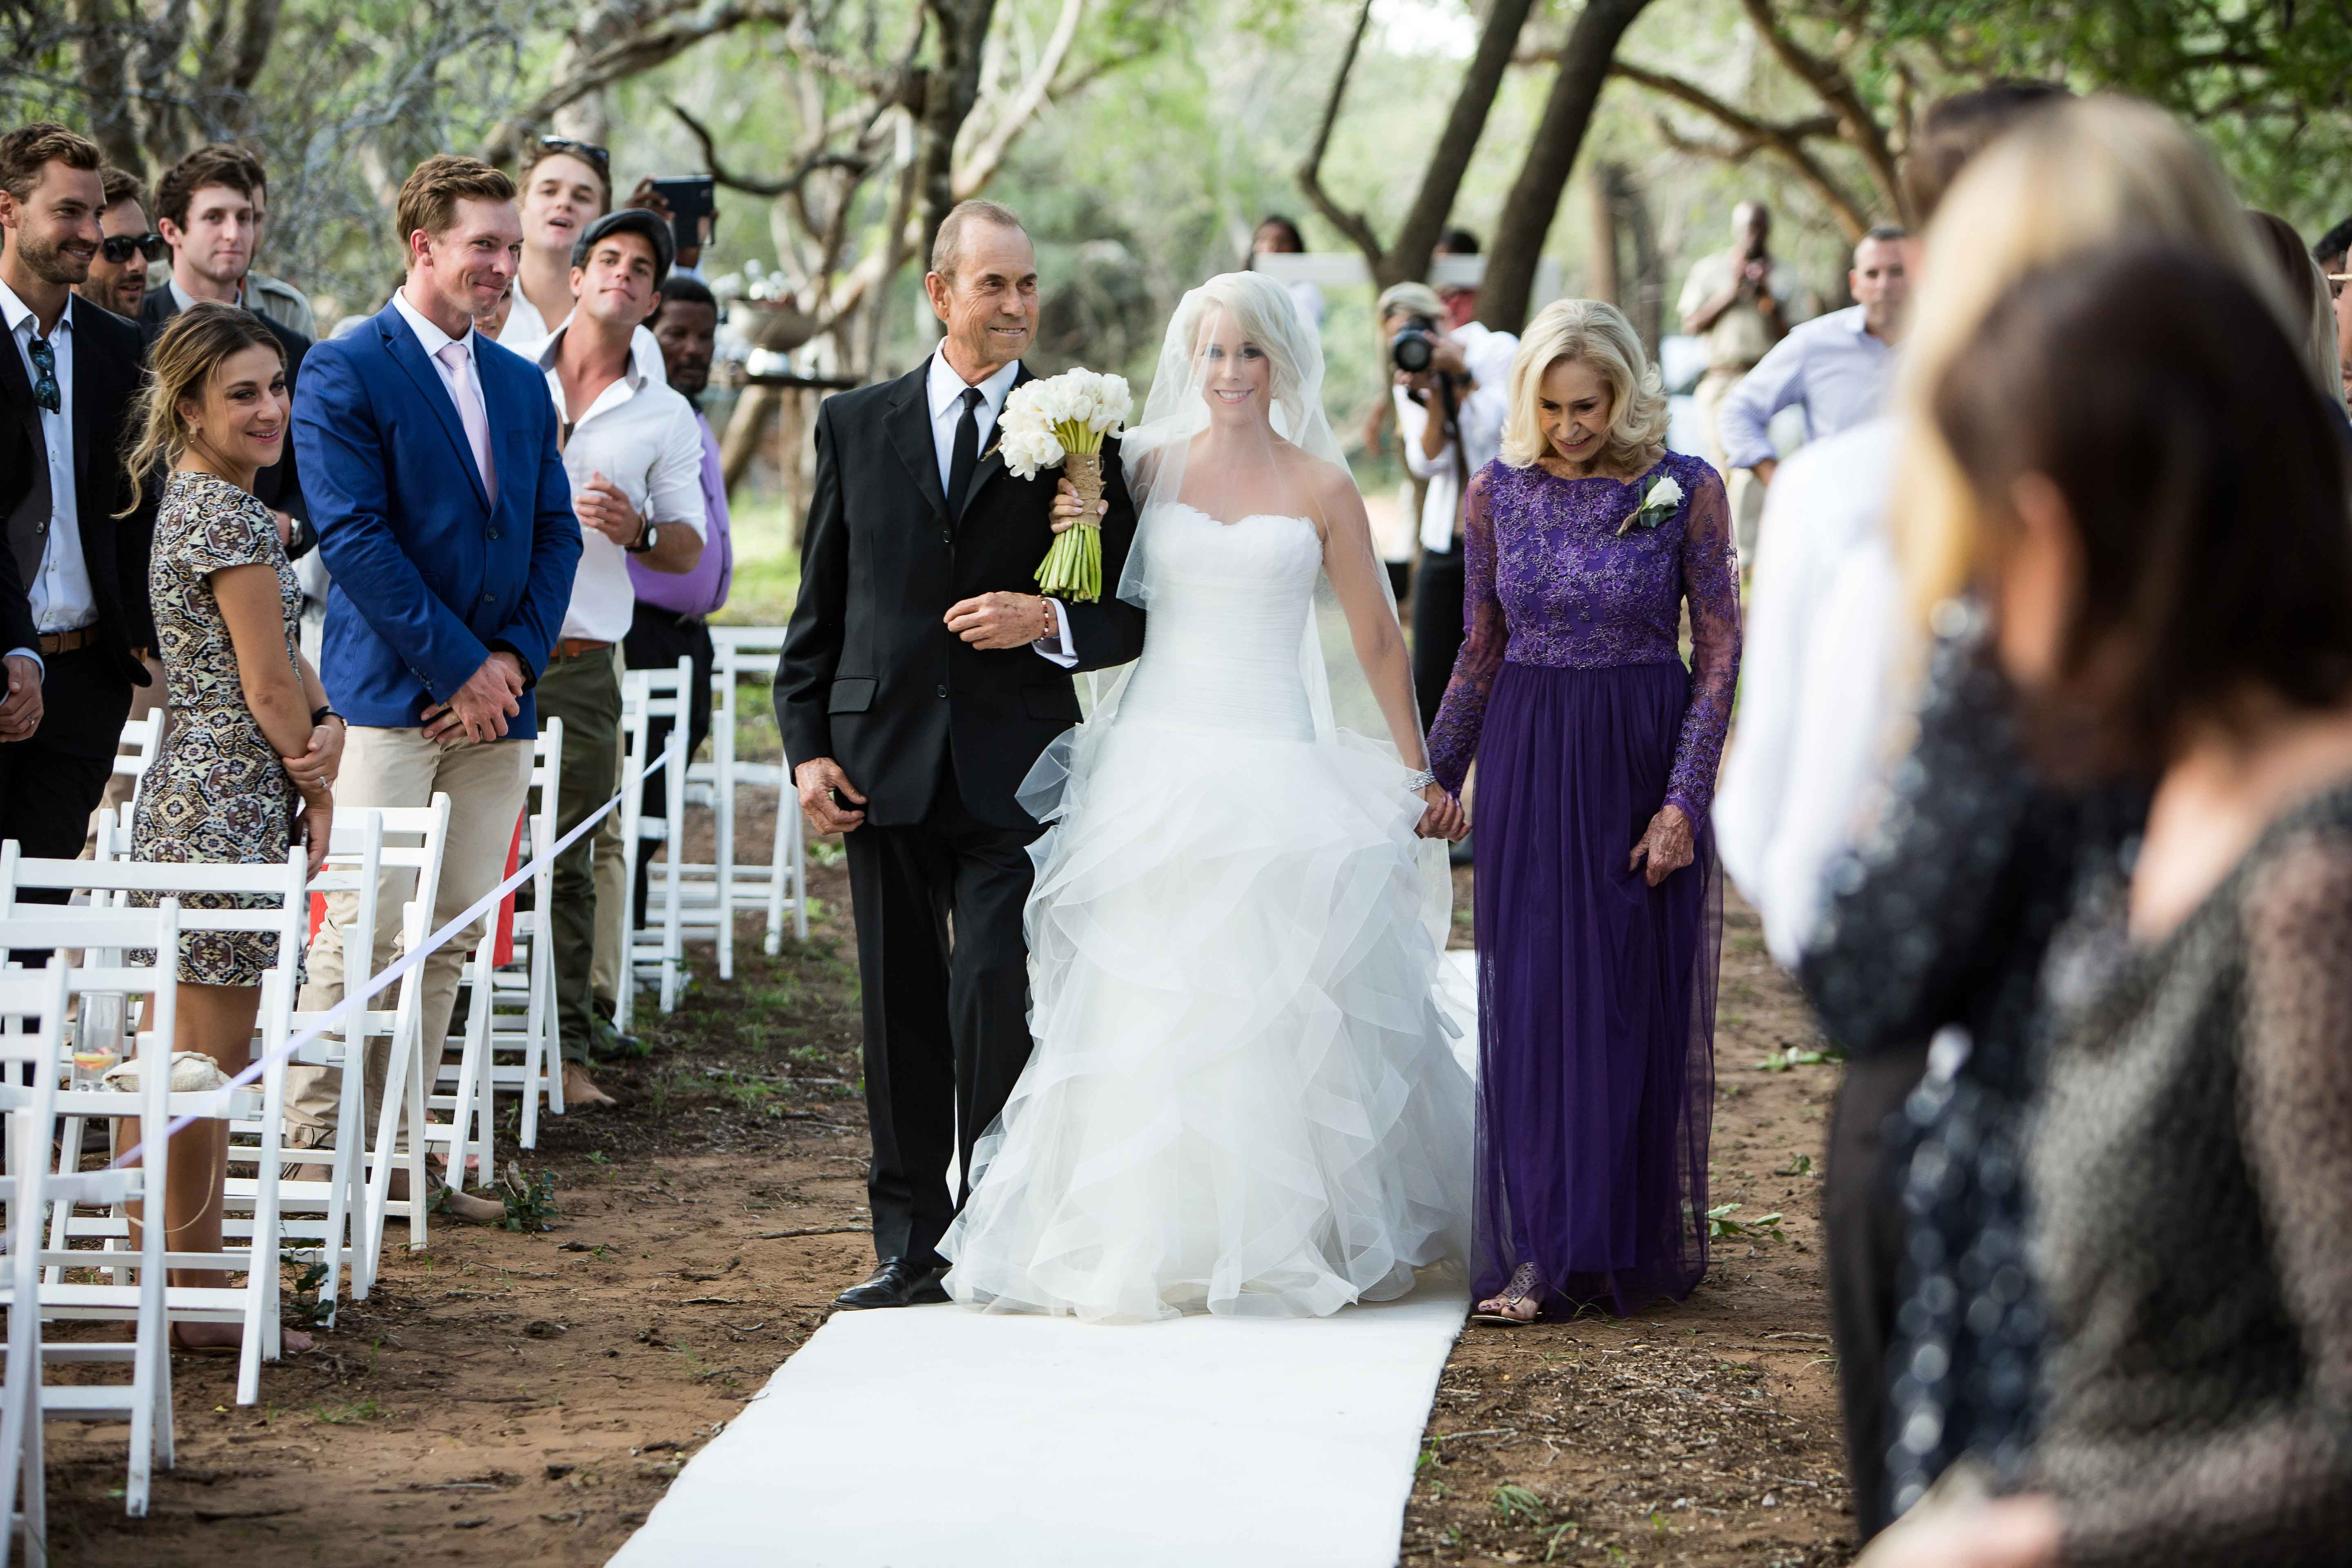 Bride walking down aisle with mother in purple gown and father in tuxedo